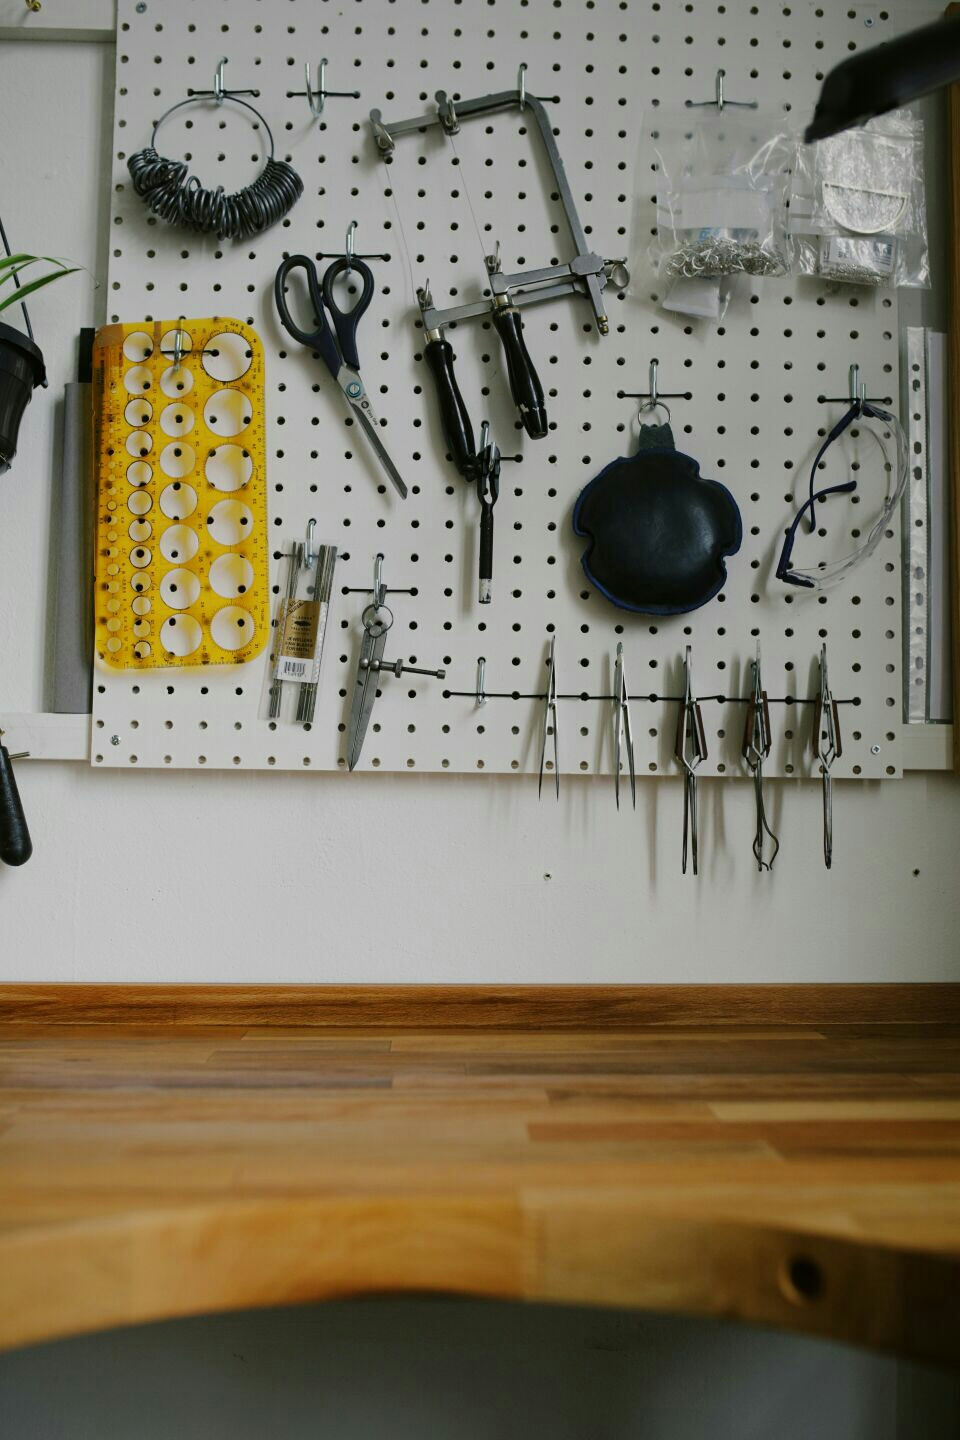 Bench and tools